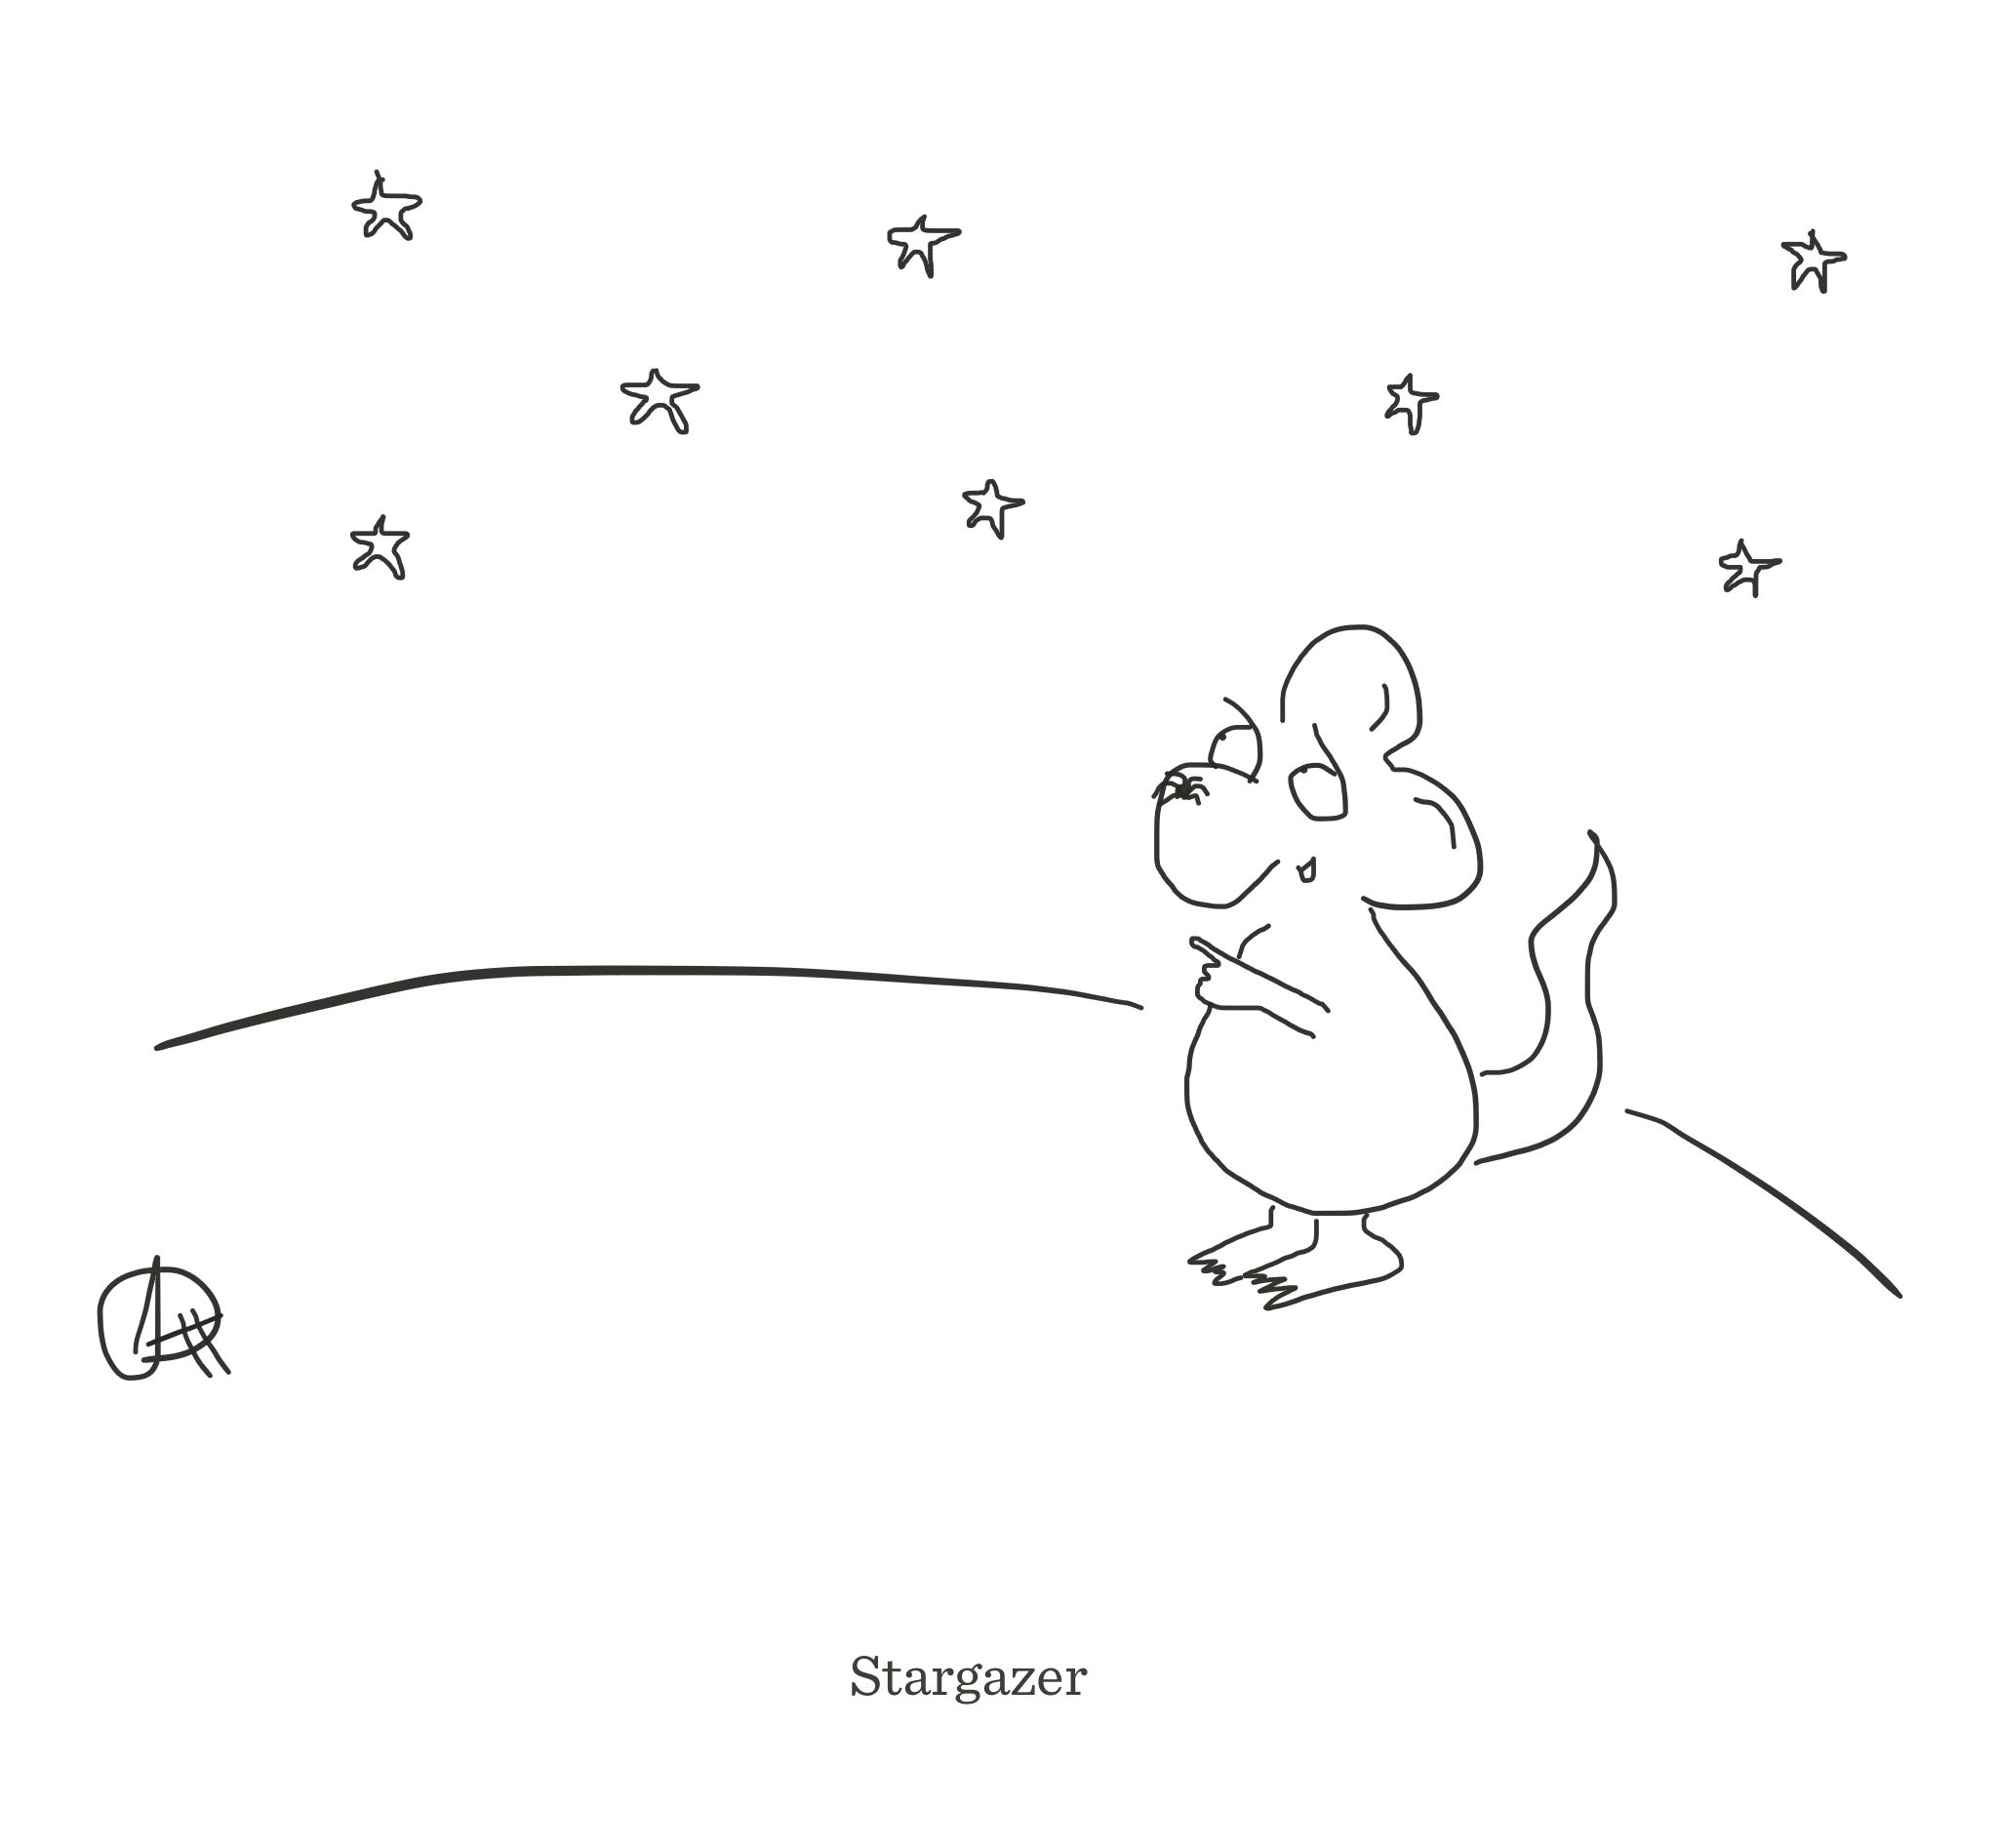 Stargazer, The Happy Rat cartoon